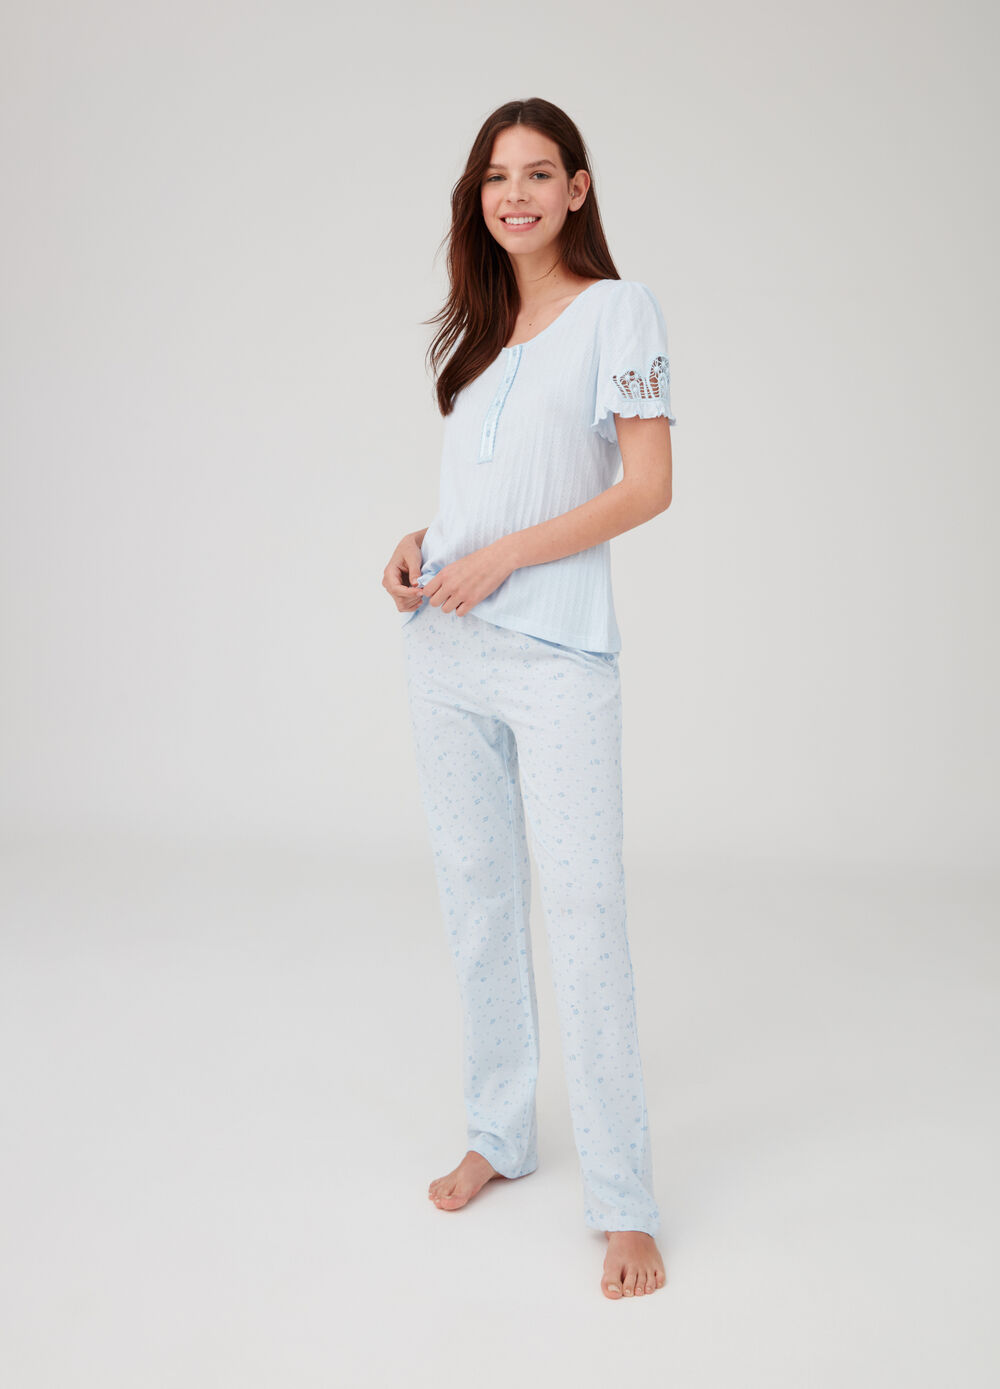 Openwork pyjama top and trousers with print